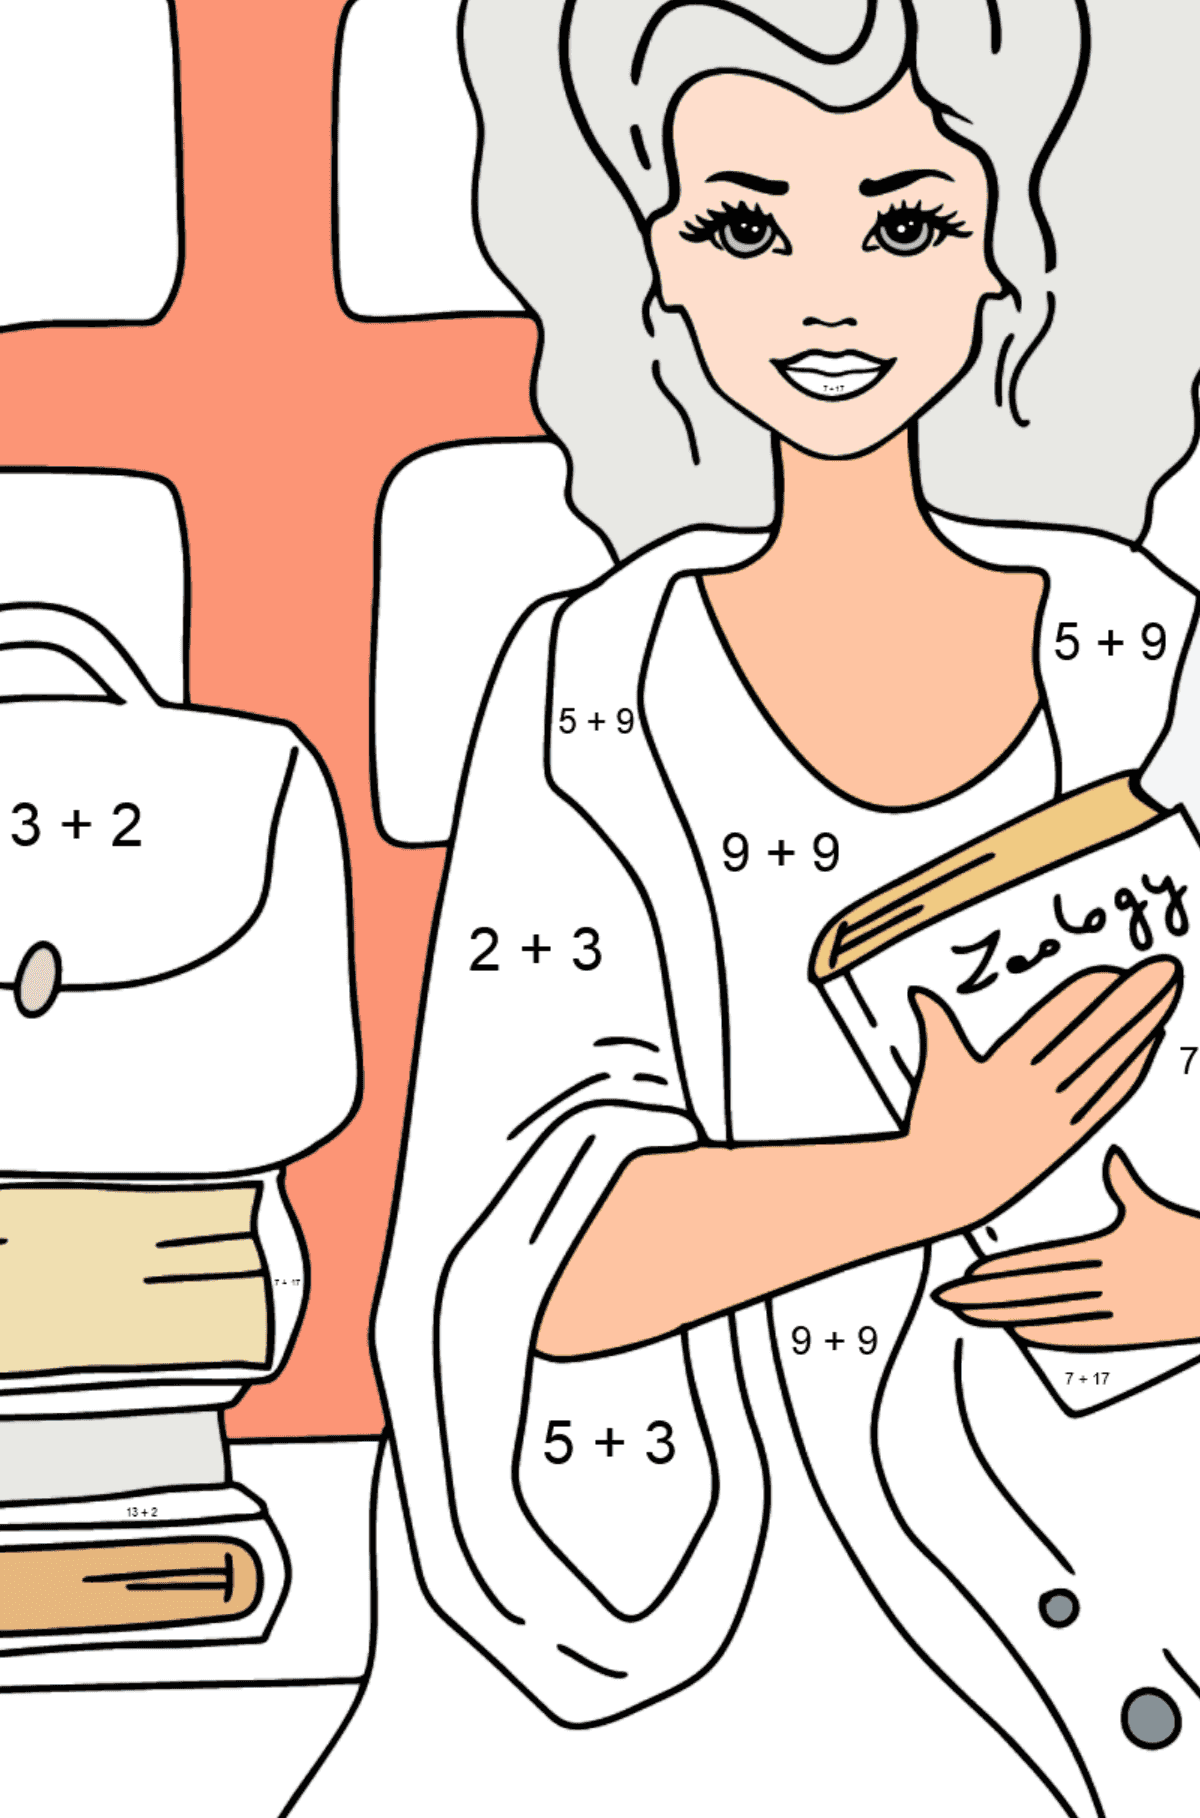 Barbie Doll Student coloring page - Math Coloring - Addition for Kids